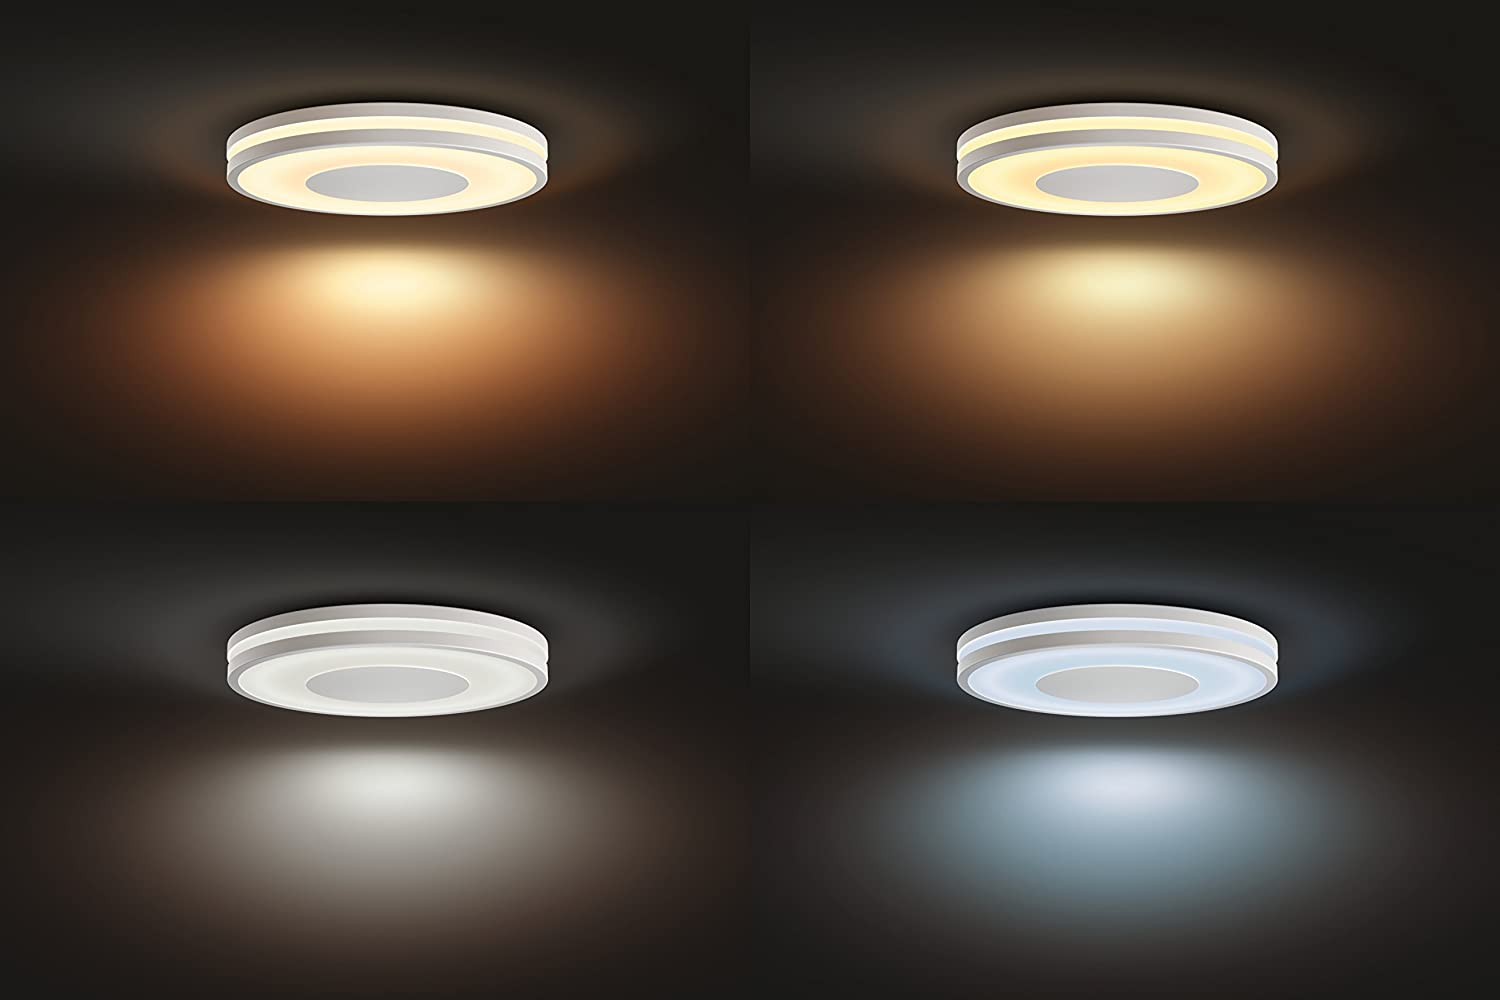 Plafoniera A Led Beign Philips Hue : Philips lighting plafoniera 3261031p7 hue being lampada da soffitto